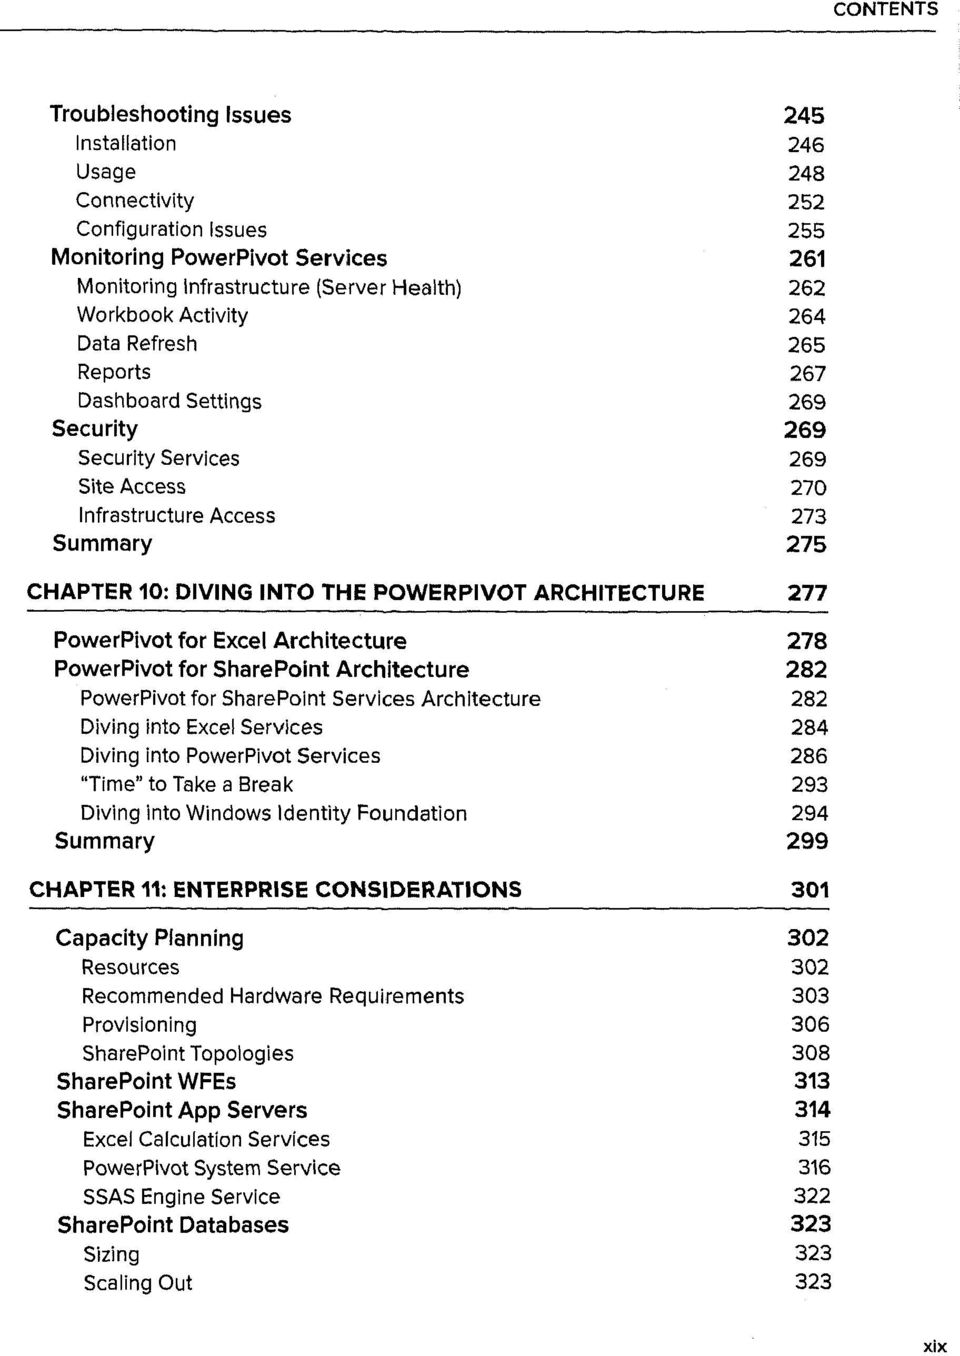 PowerPivot for Excel Architecture 278 PowerPivot for SharePoint Architecture 282 PowerPivot for SharePoint Services Architecture 282 Diving into Excel Services 284 Diving into PowerPivot Services 286